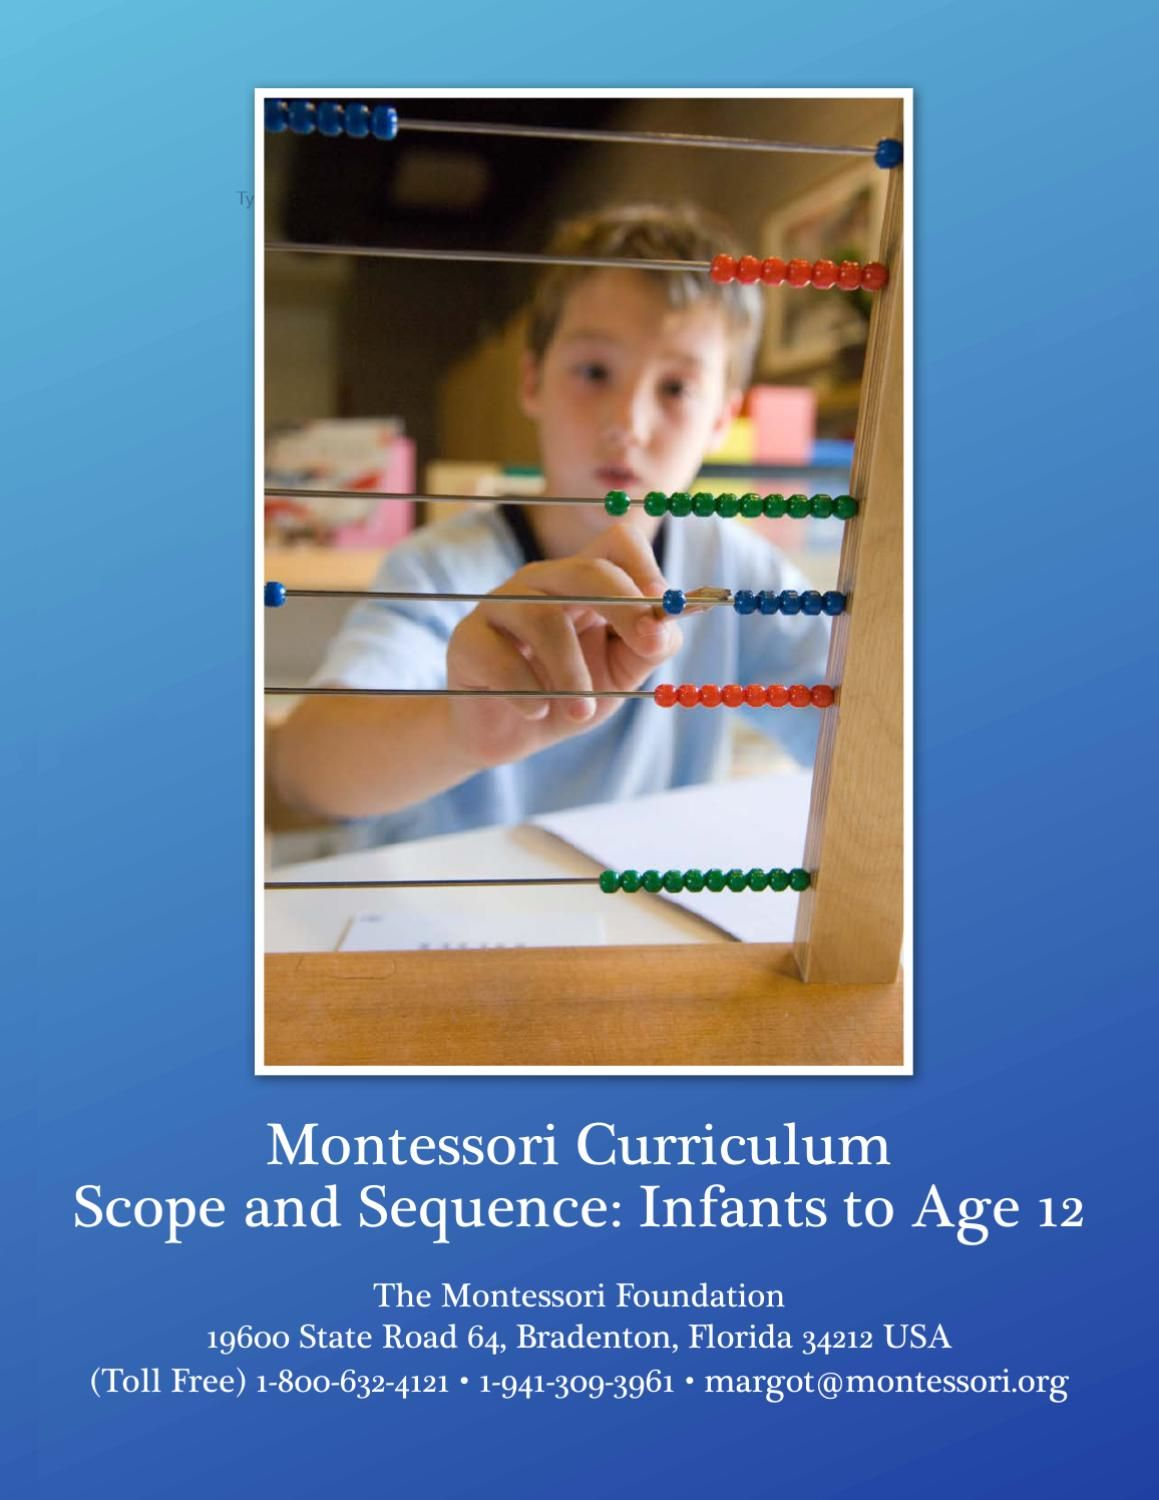 This is a new expanded and updated Montessori curriculum scope and sequence for birth through toddlers, and ages 3 to 12 (US grade 6). It includes Practical Life Skills, Sensorial, Language Arts, Mathematics and Geometry, Geography, History, Science, Cosmic Studies, and Art.